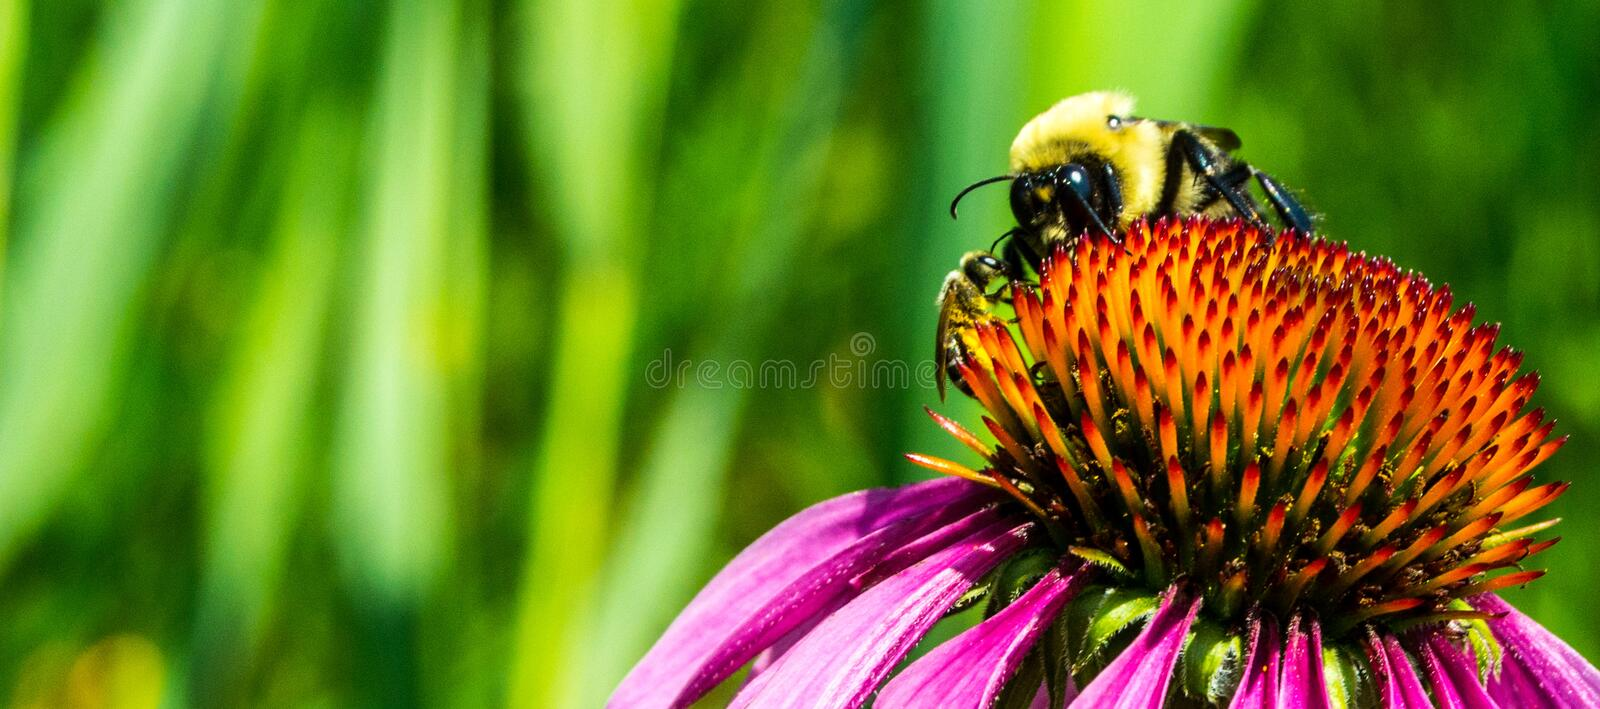 Bees on flower. Bees pollinating atop a multi colored flower against a green summer background stock photo